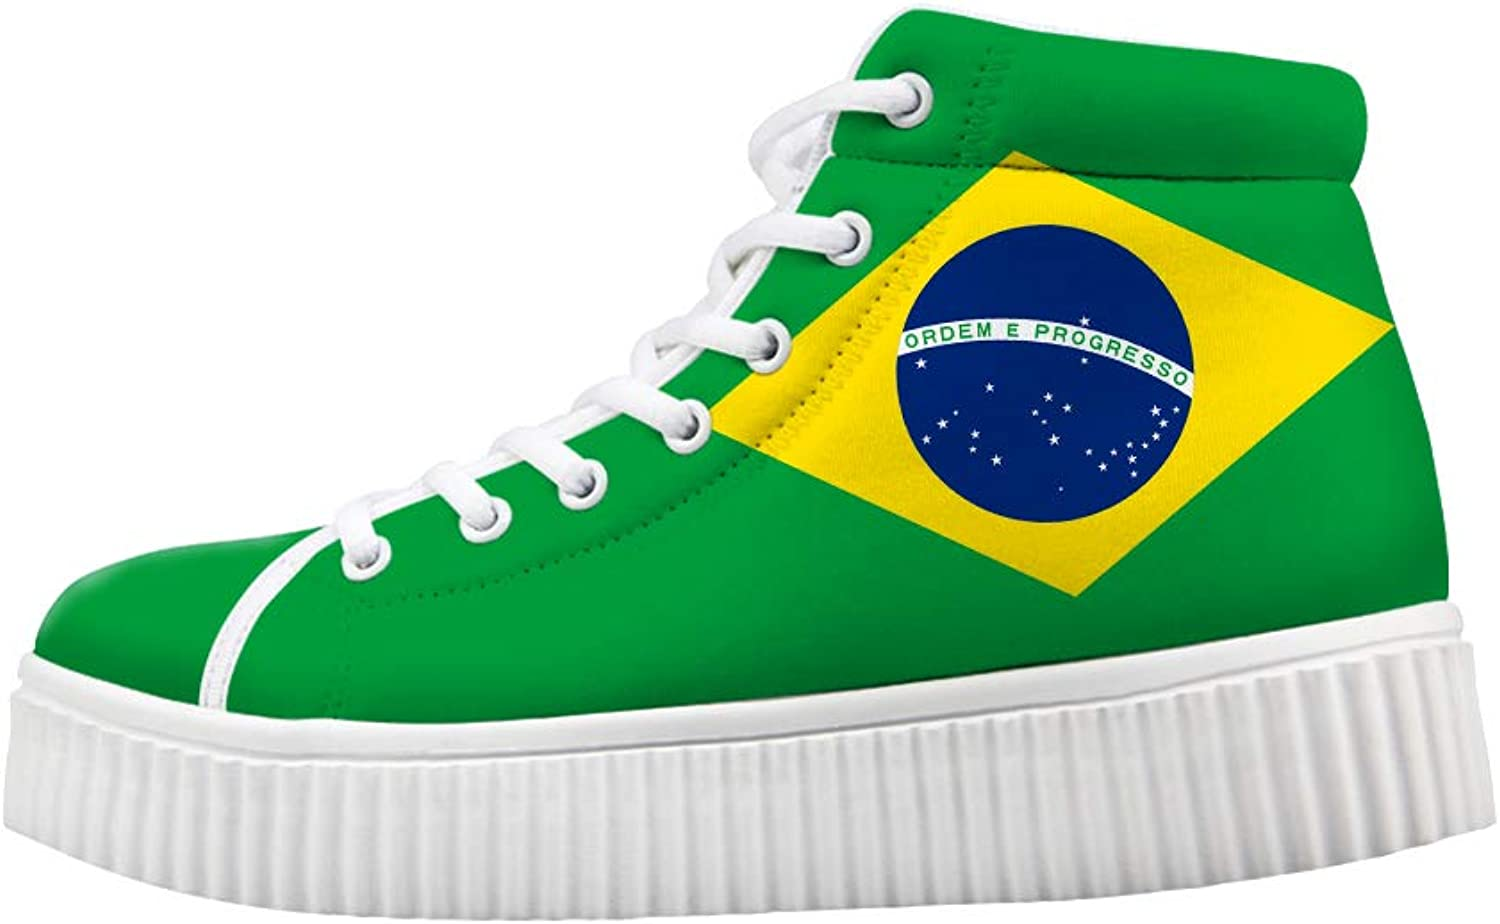 Owaheson Platform Lace up Sneaker Casual Chunky Walking shoes High Top Women Brazil Flag